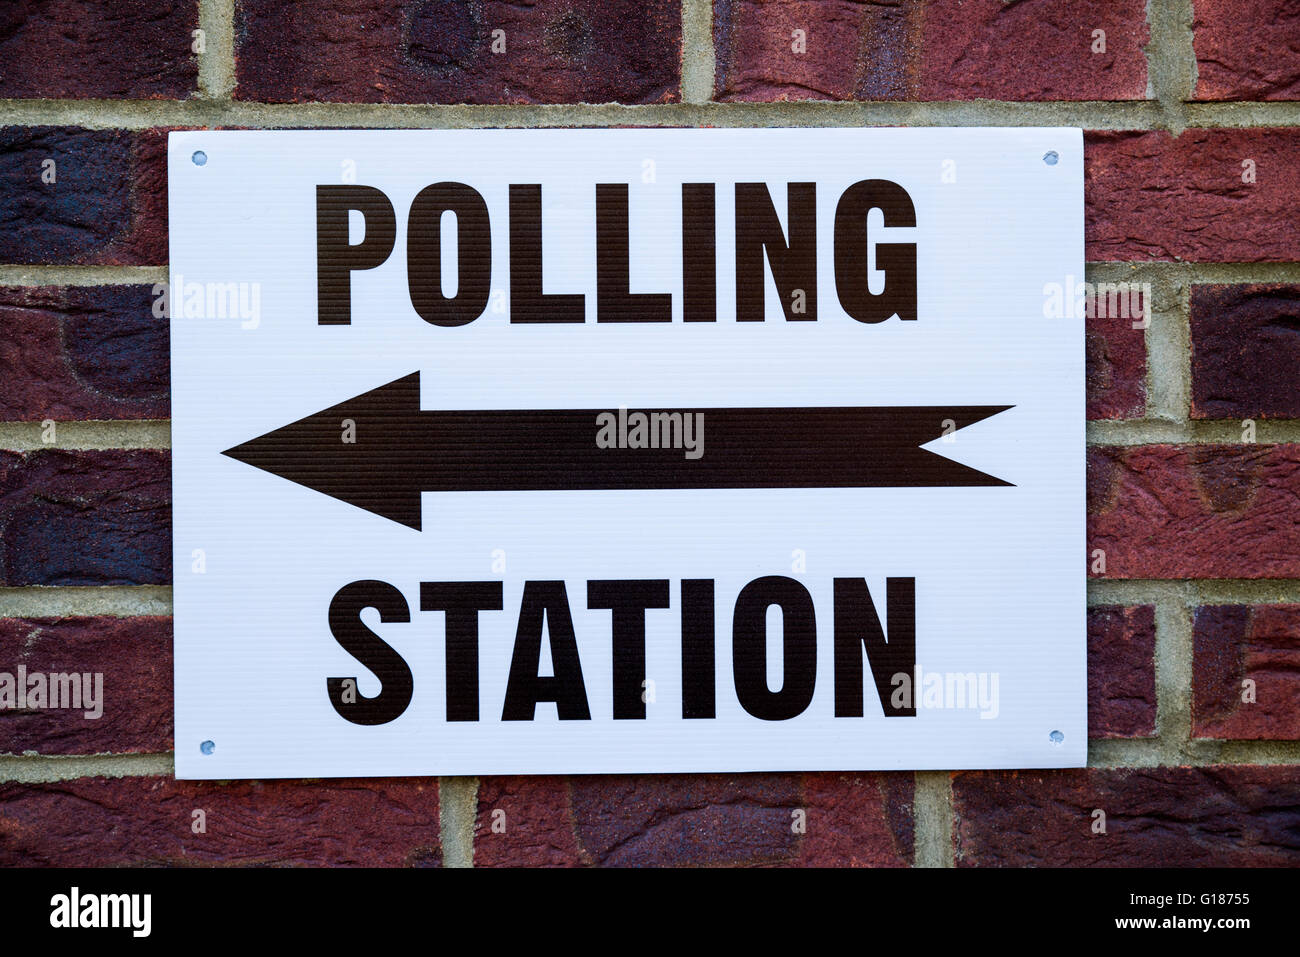 A sign outside a Polling Station on election day in the UK. - Stock Image